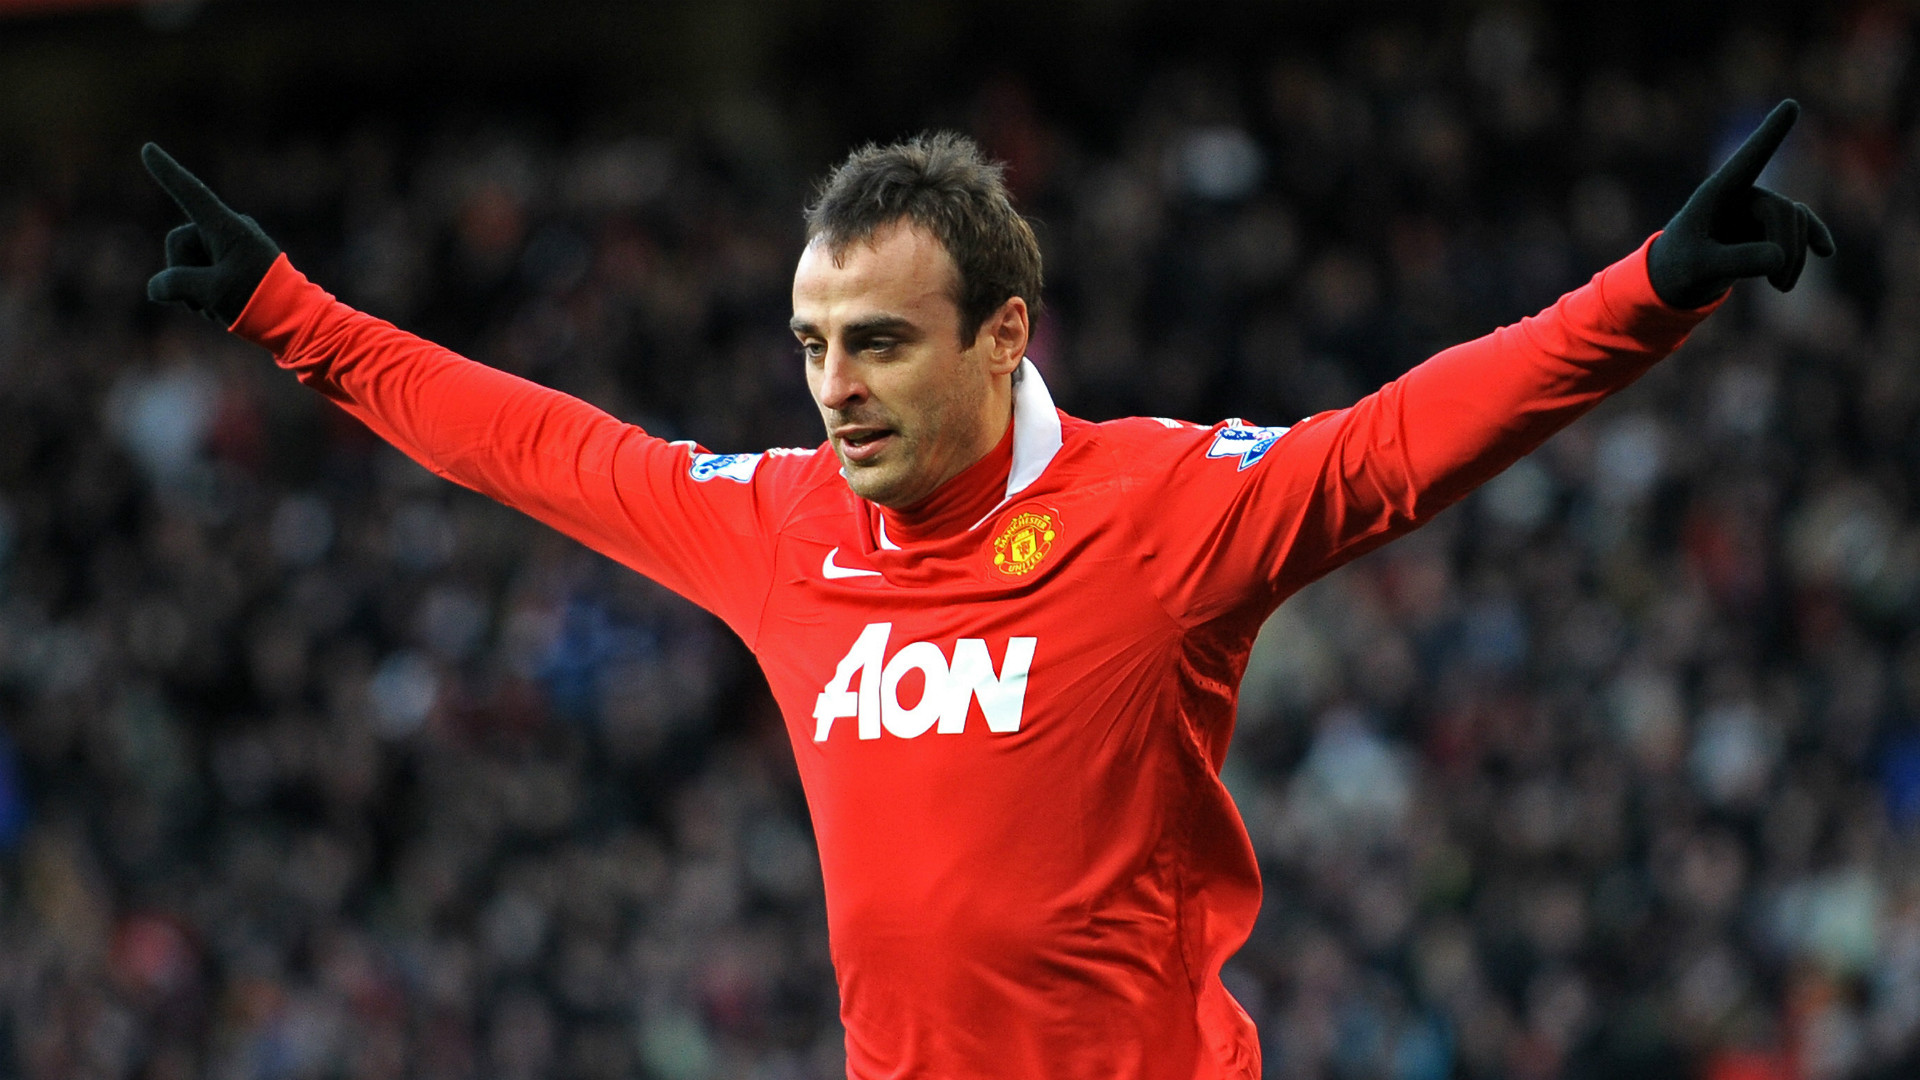 Former Manchester United and Bulgaria legend Berbatov confirms retirement